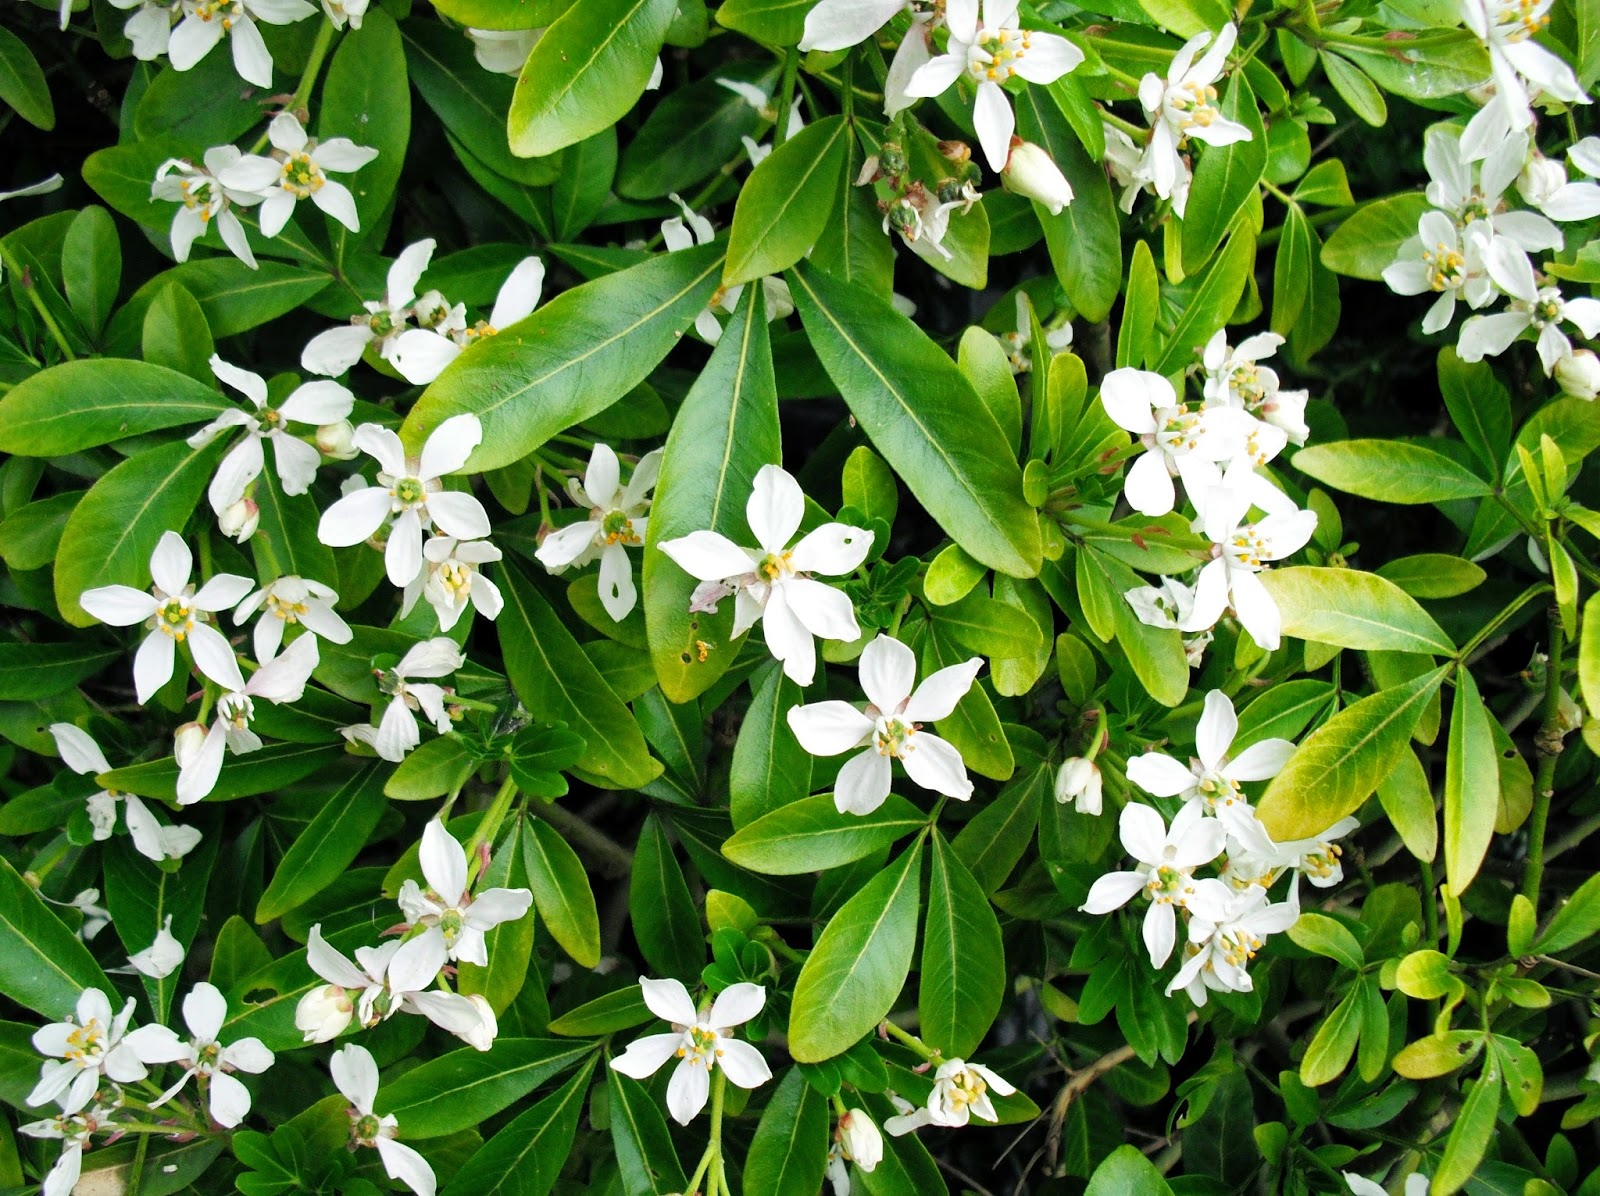 White flowering evergreen shrubs image collections flower fine evergreen shrubs with white flowers composition wedding and perfect white flowering evergreen shrubs vignette images mightylinksfo